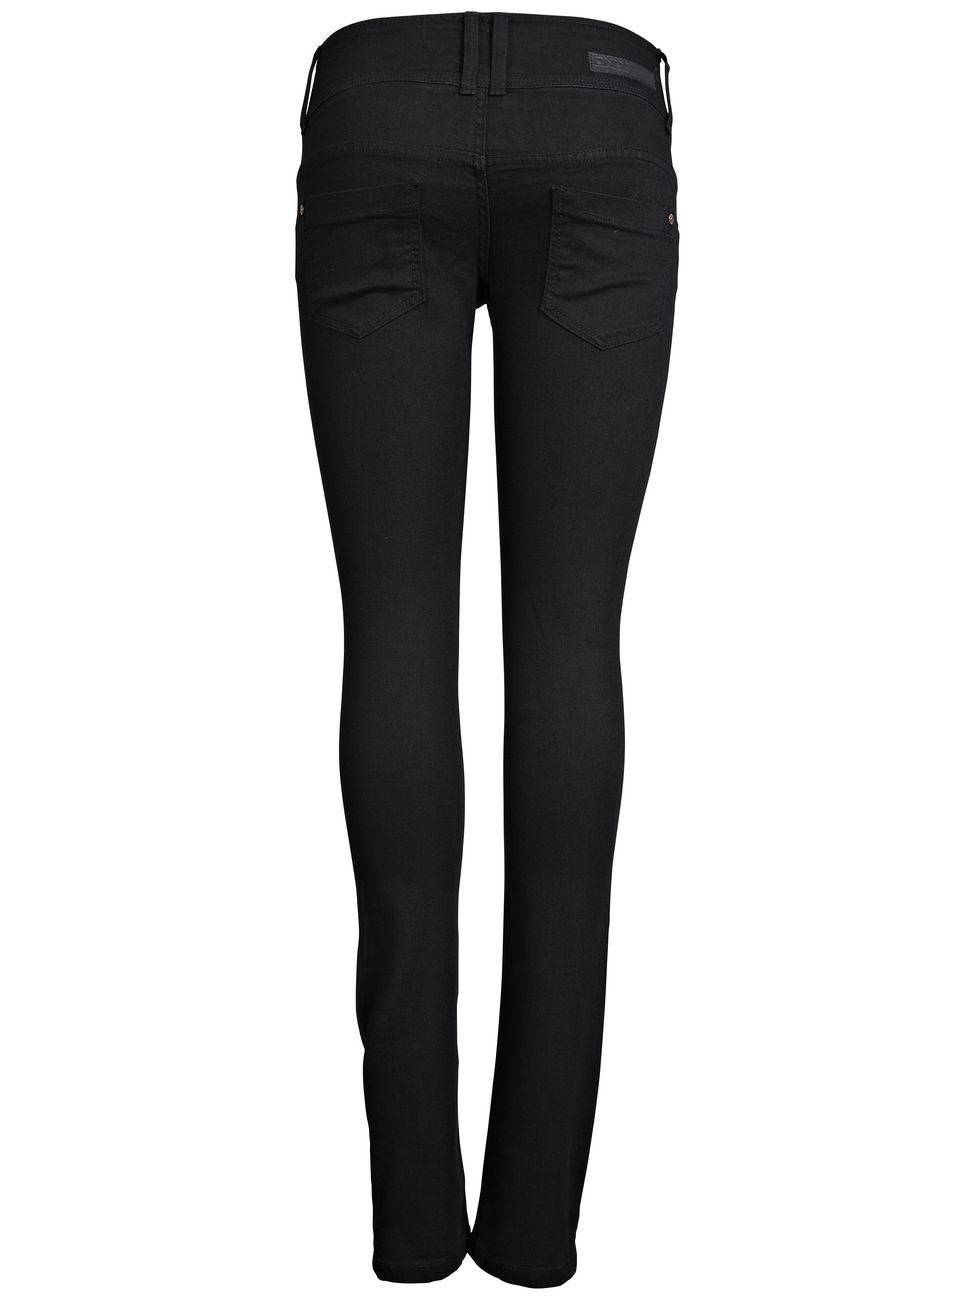 Only-Jeans-SLIM-LOW-ANEMONE-Slim-Fit-Low-Waist-black-neu